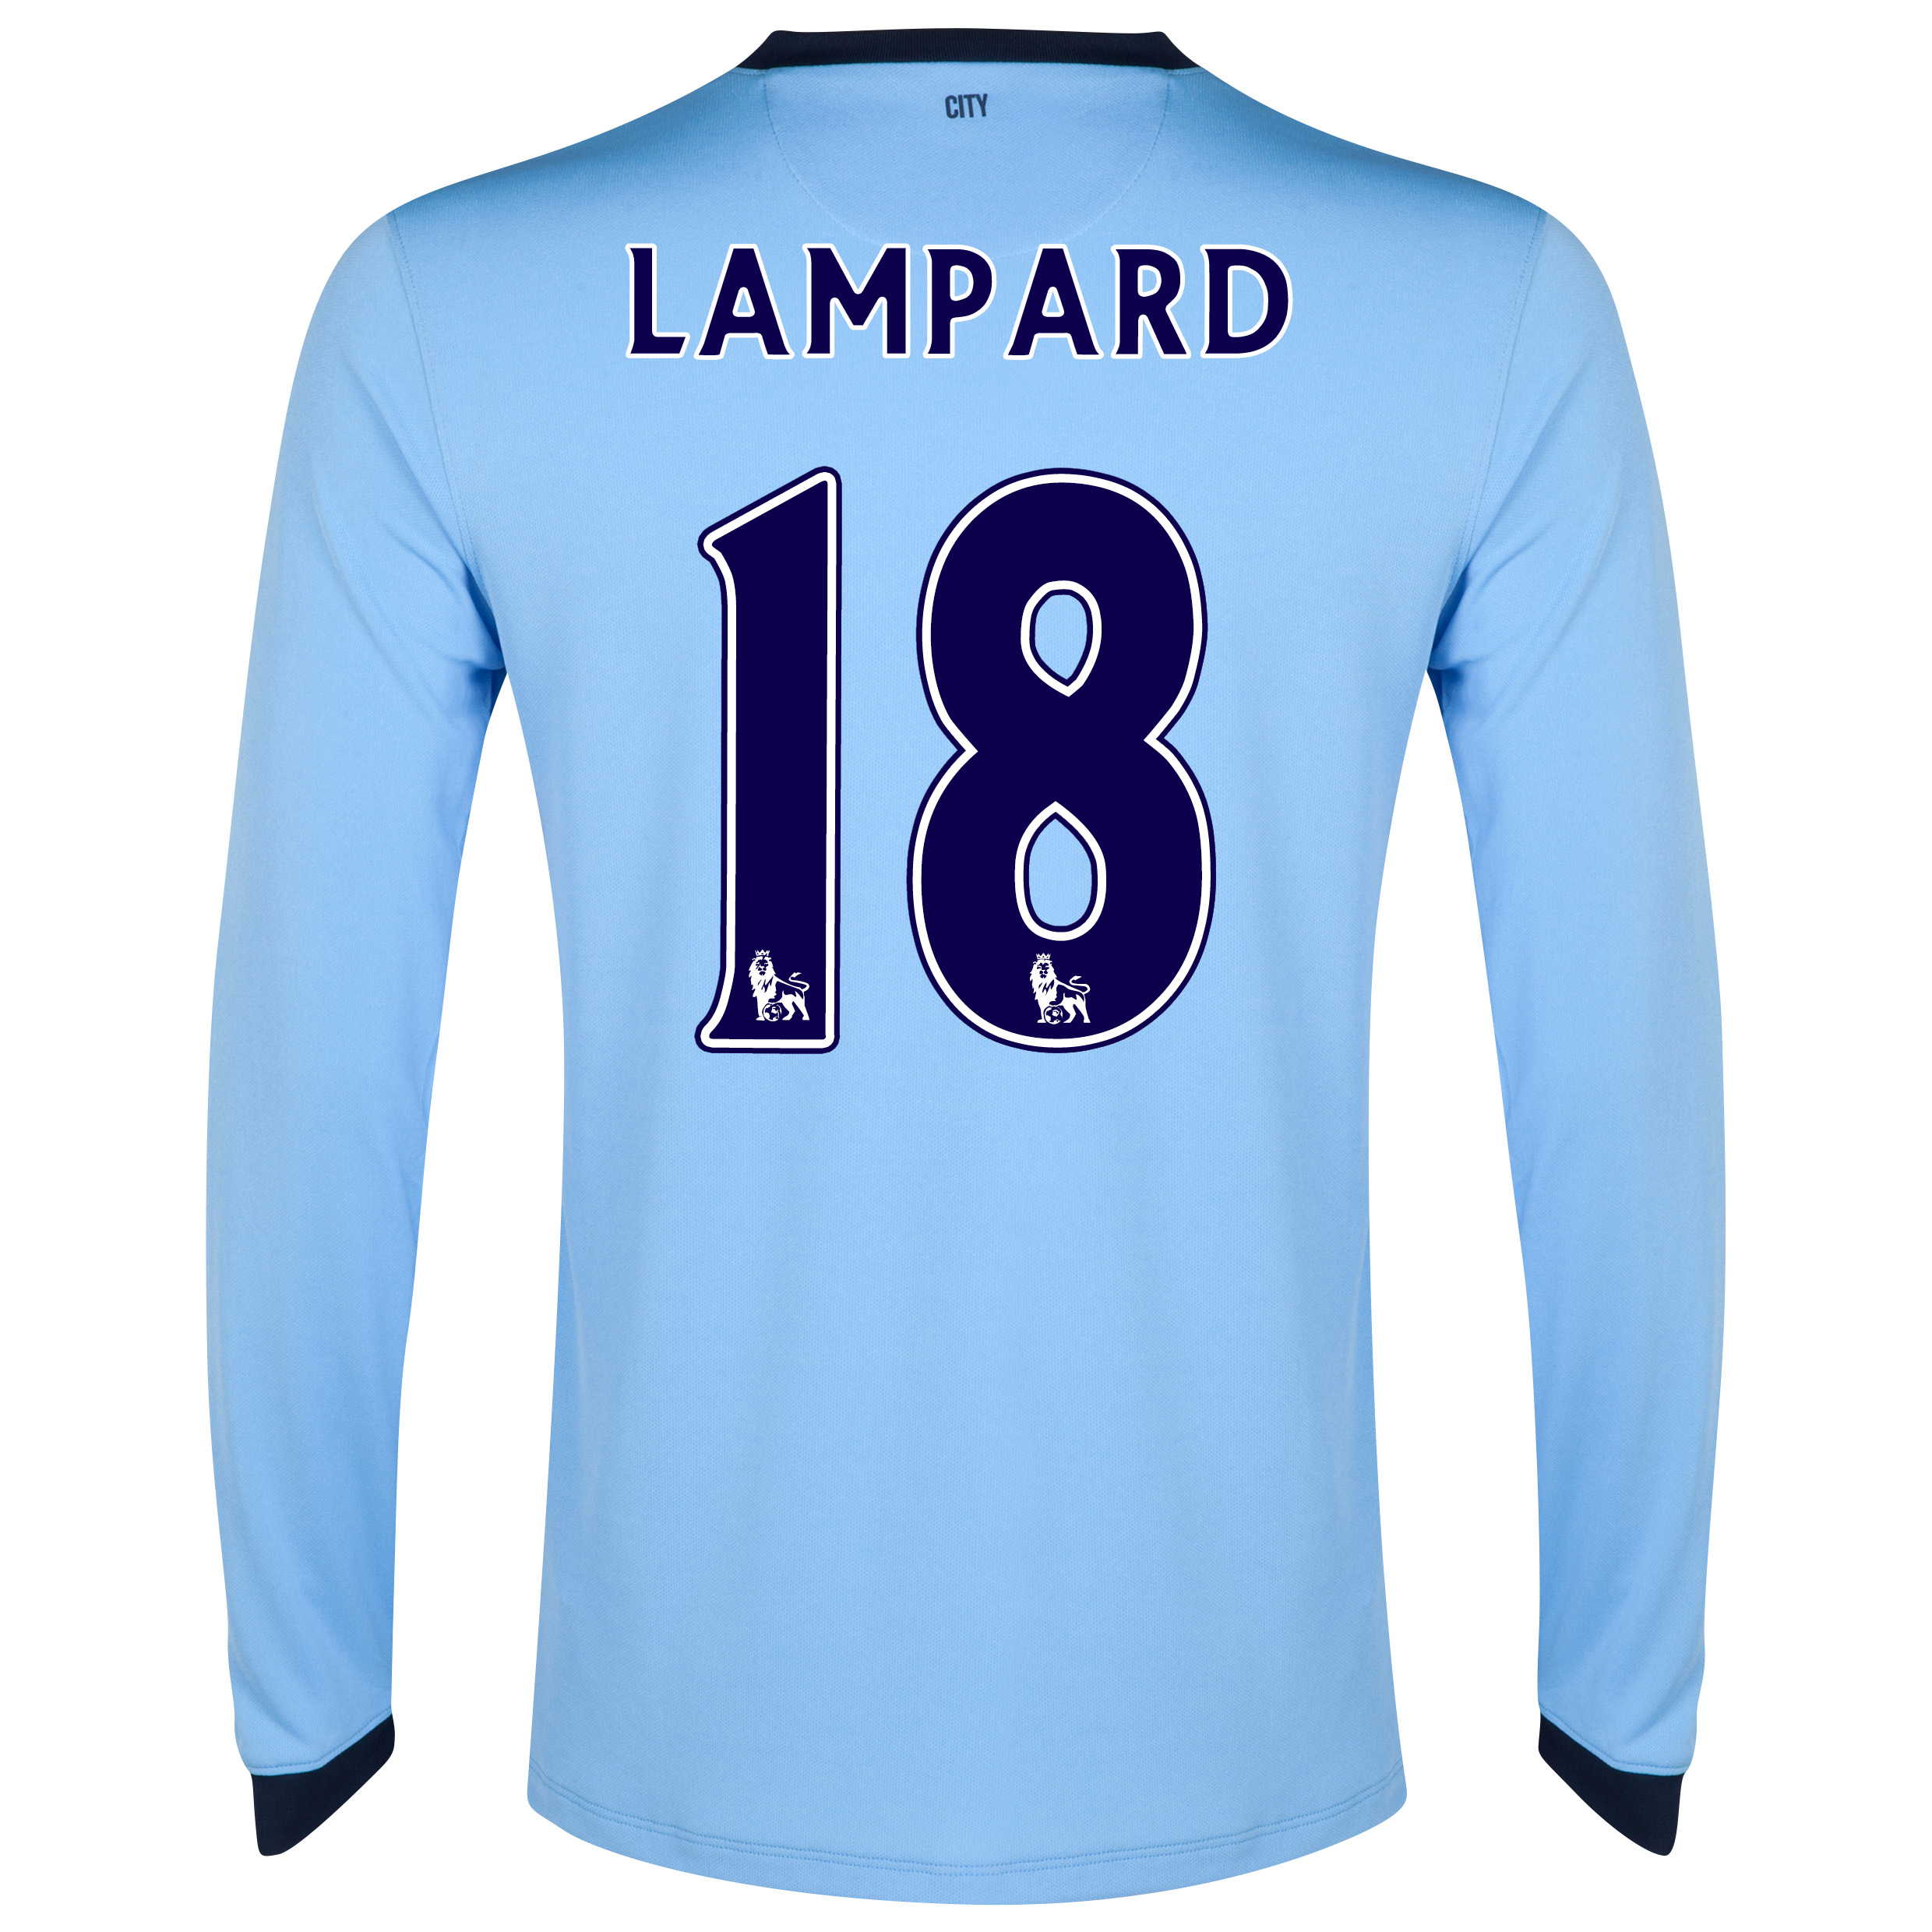 Manchester City Home Shirt 2014/15 - Long Sleeve Sky Blue with Lampard 18 printing